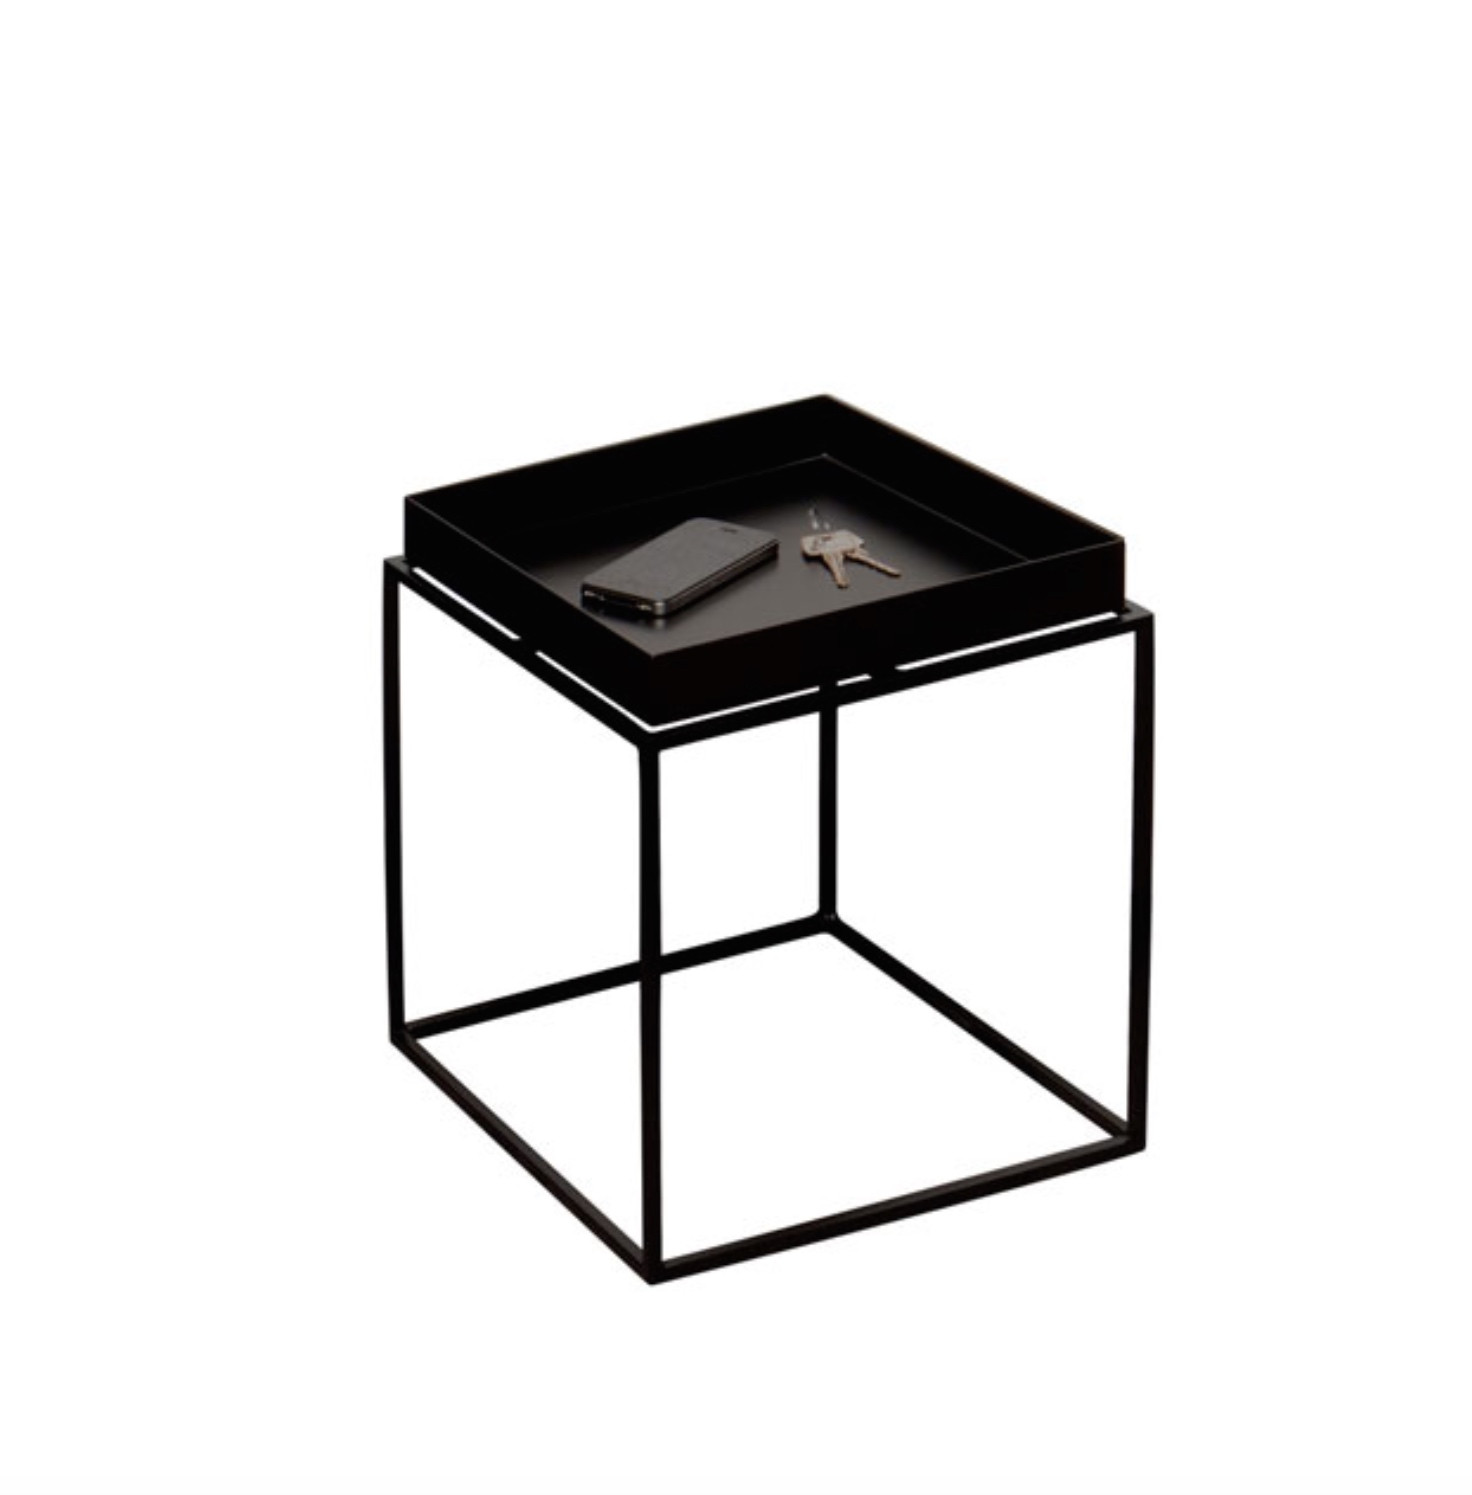 hay tray table small zwart. Black Bedroom Furniture Sets. Home Design Ideas